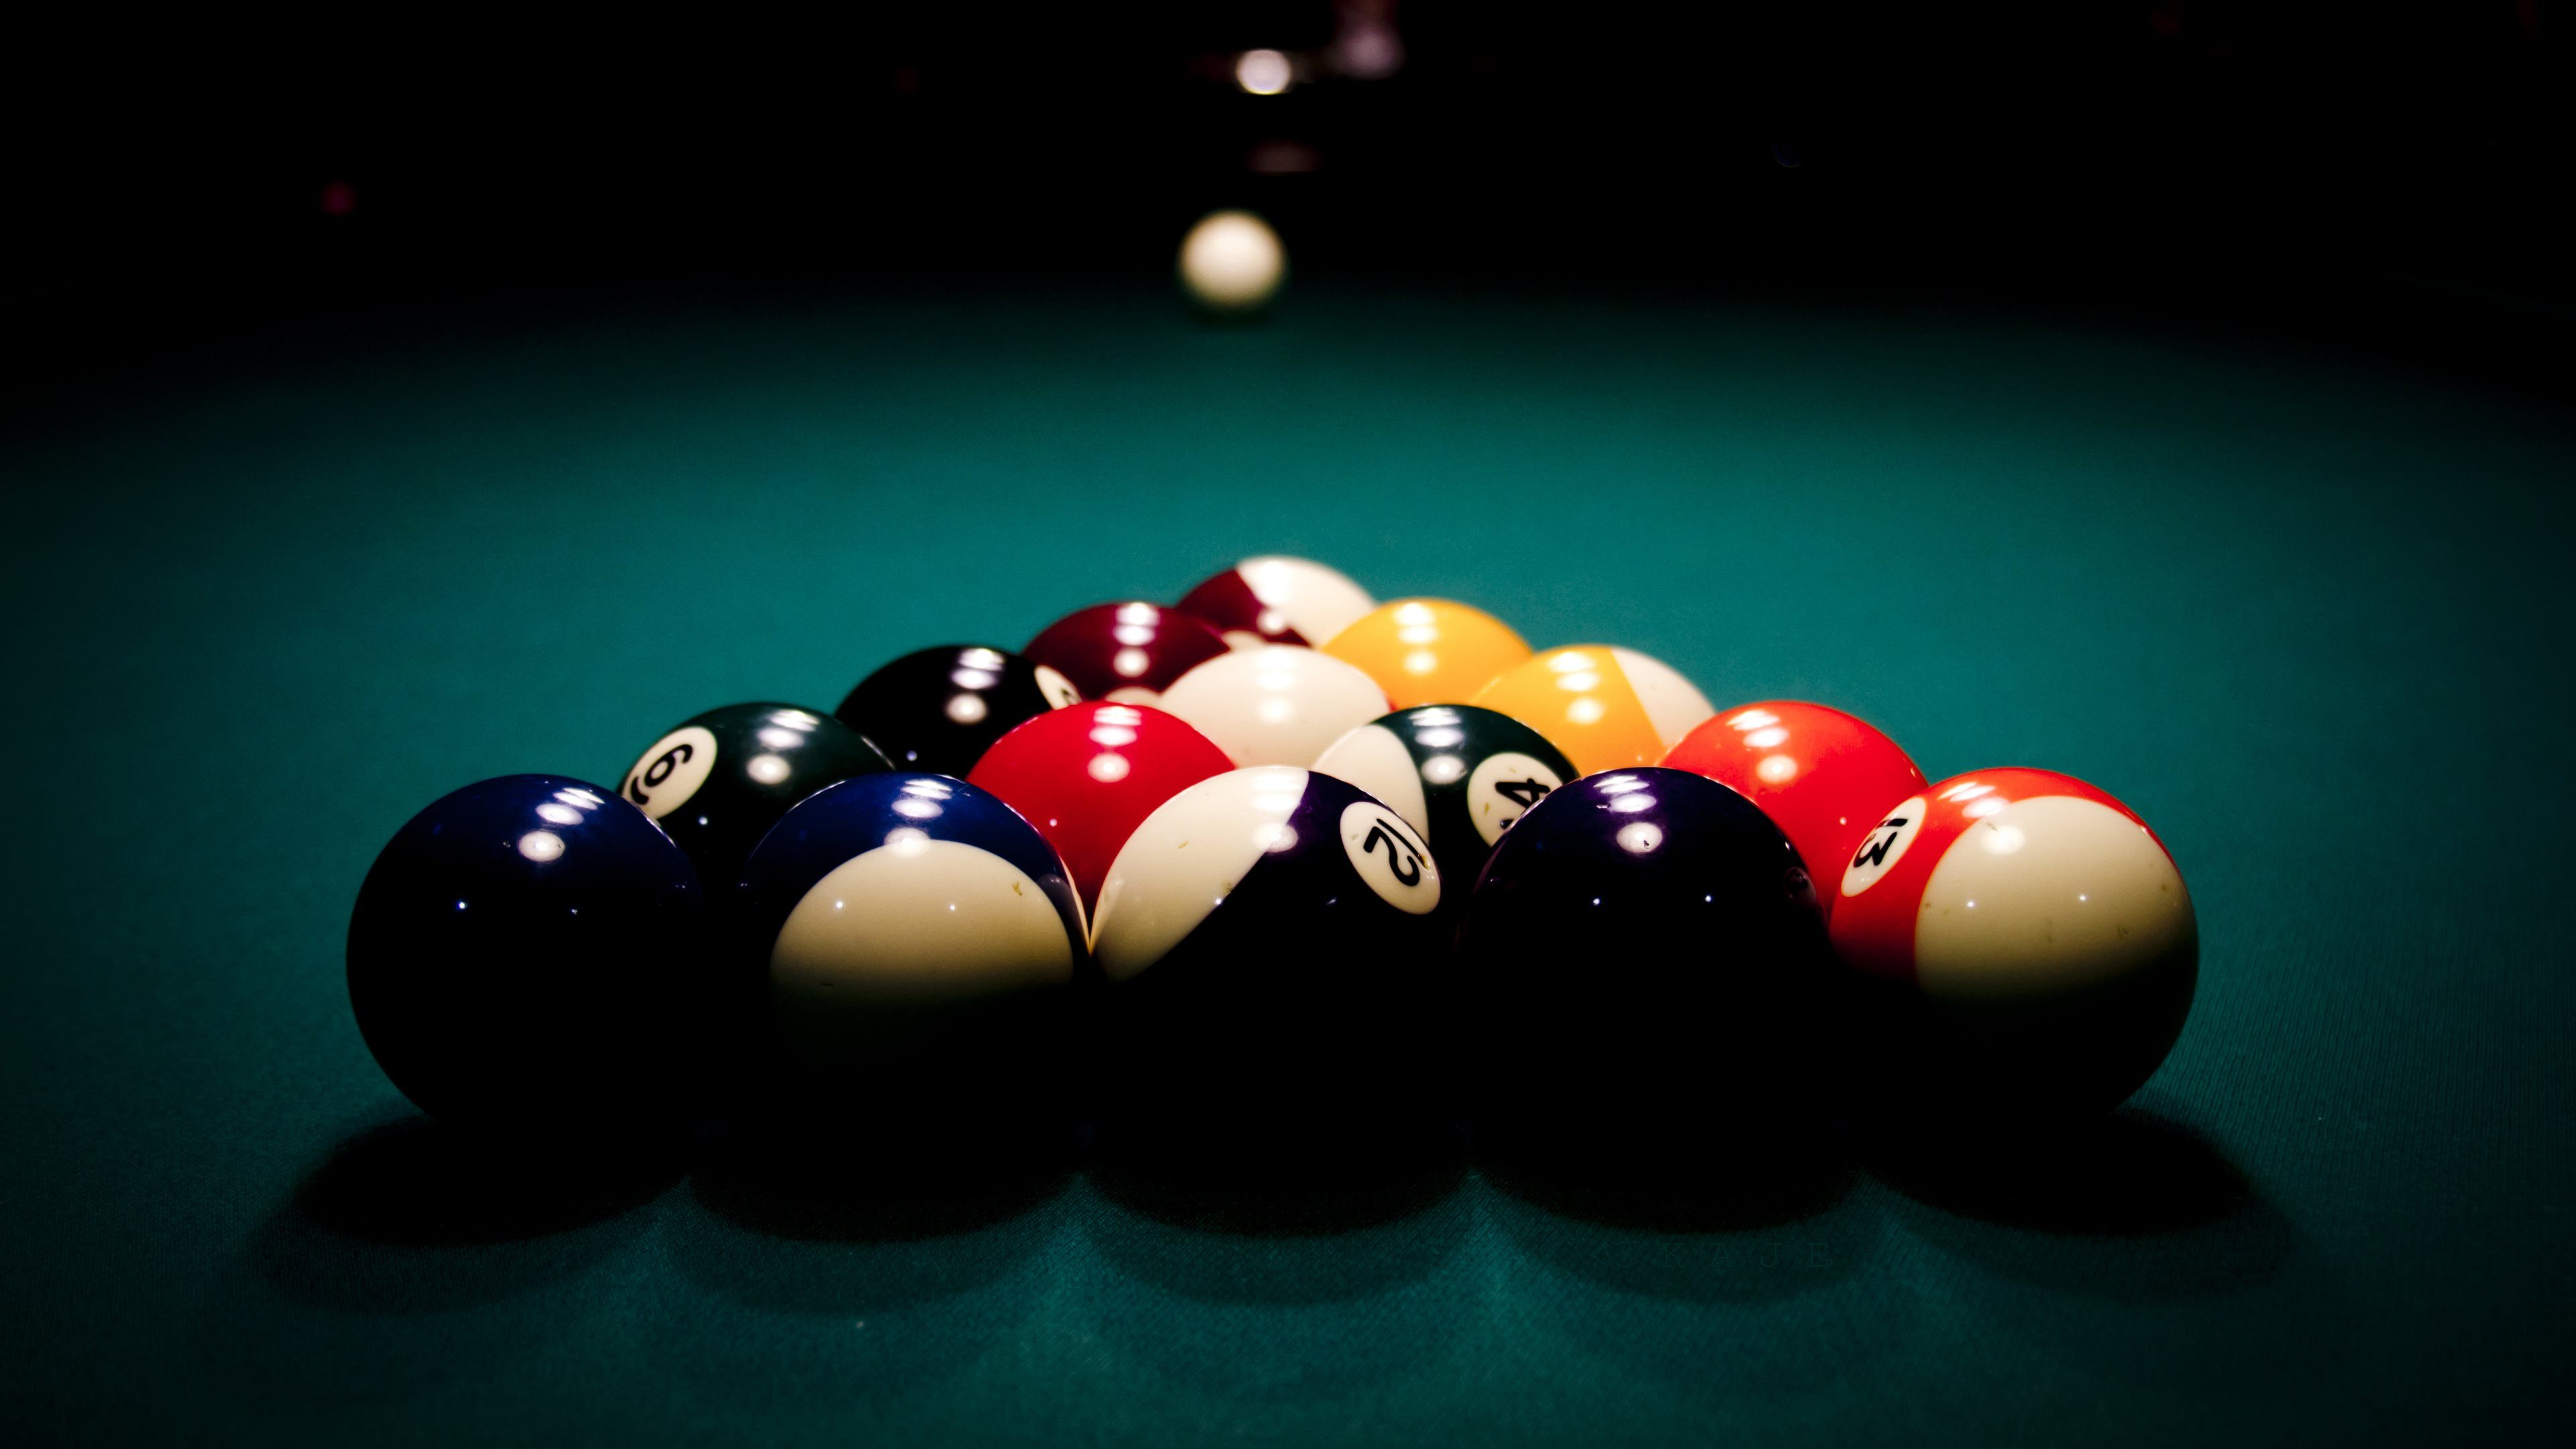 Snooker Wallpapers Find best latest Snooker Wallpapers for your PC 3840x2160